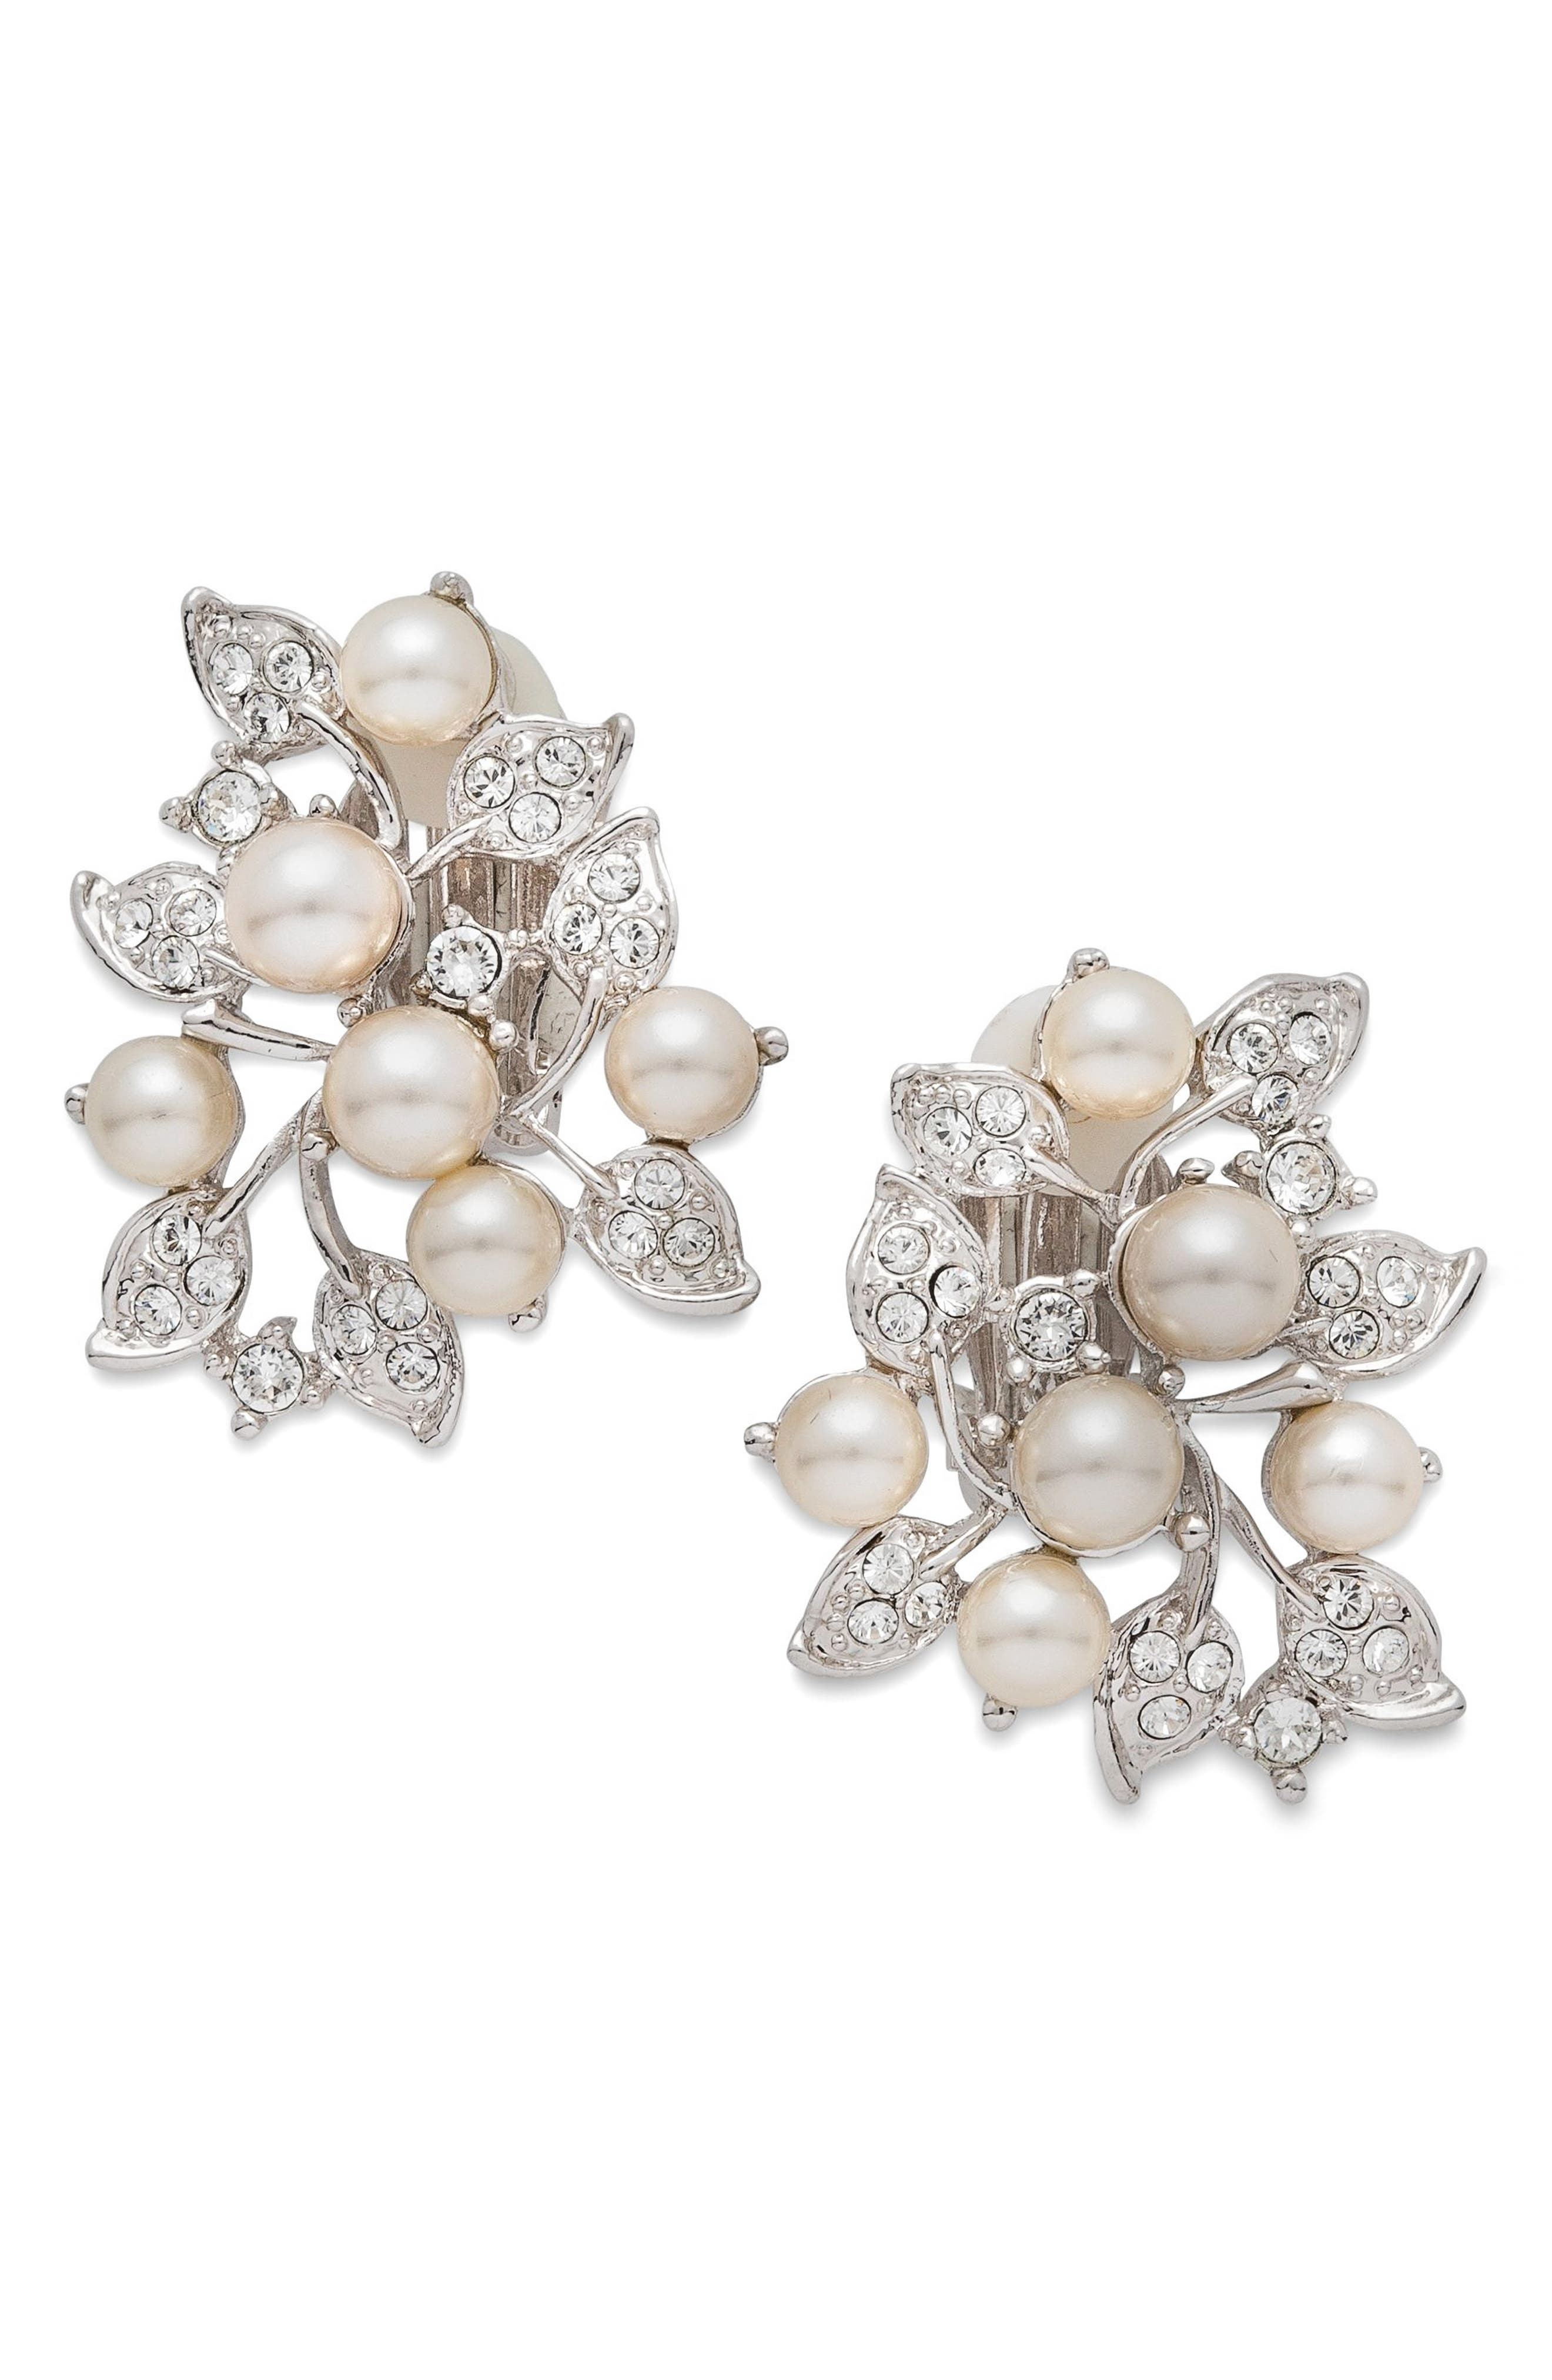 Main Image - Nina Imitation Pearl & Crystal Clip Earrings